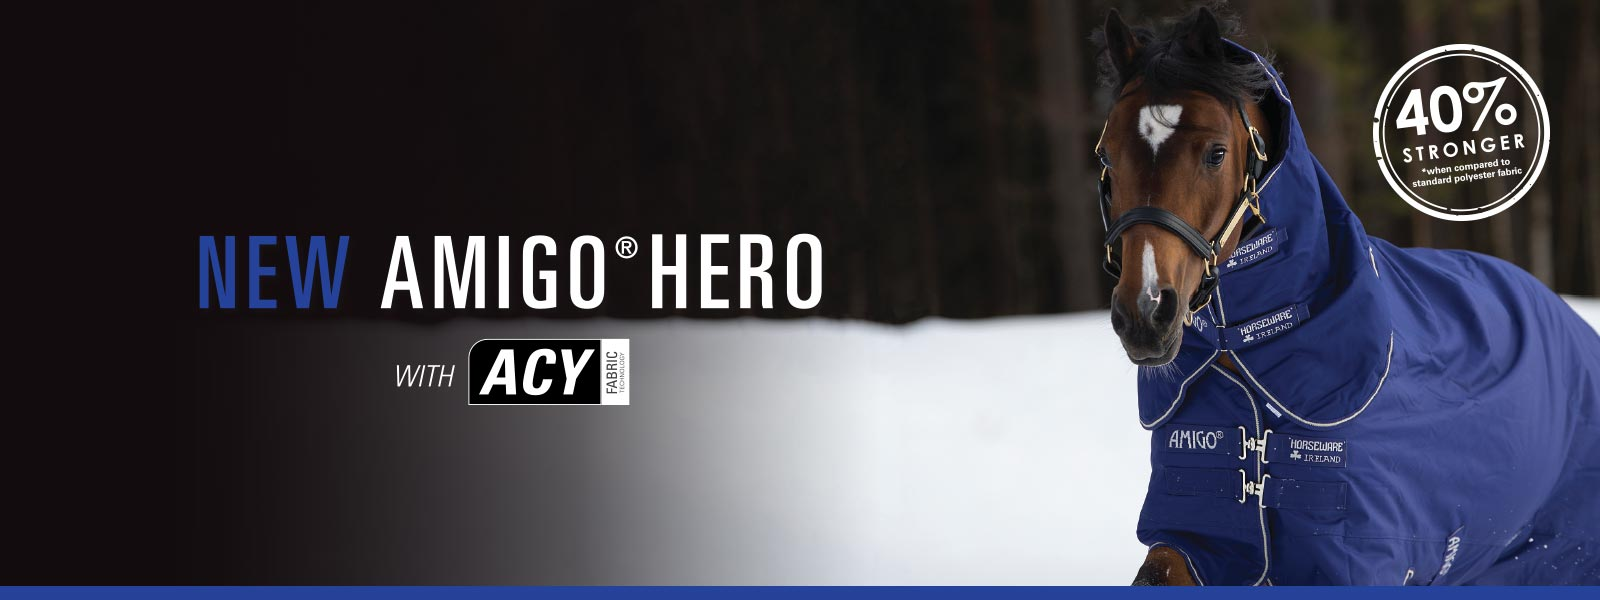 ACY - New amigo Hero